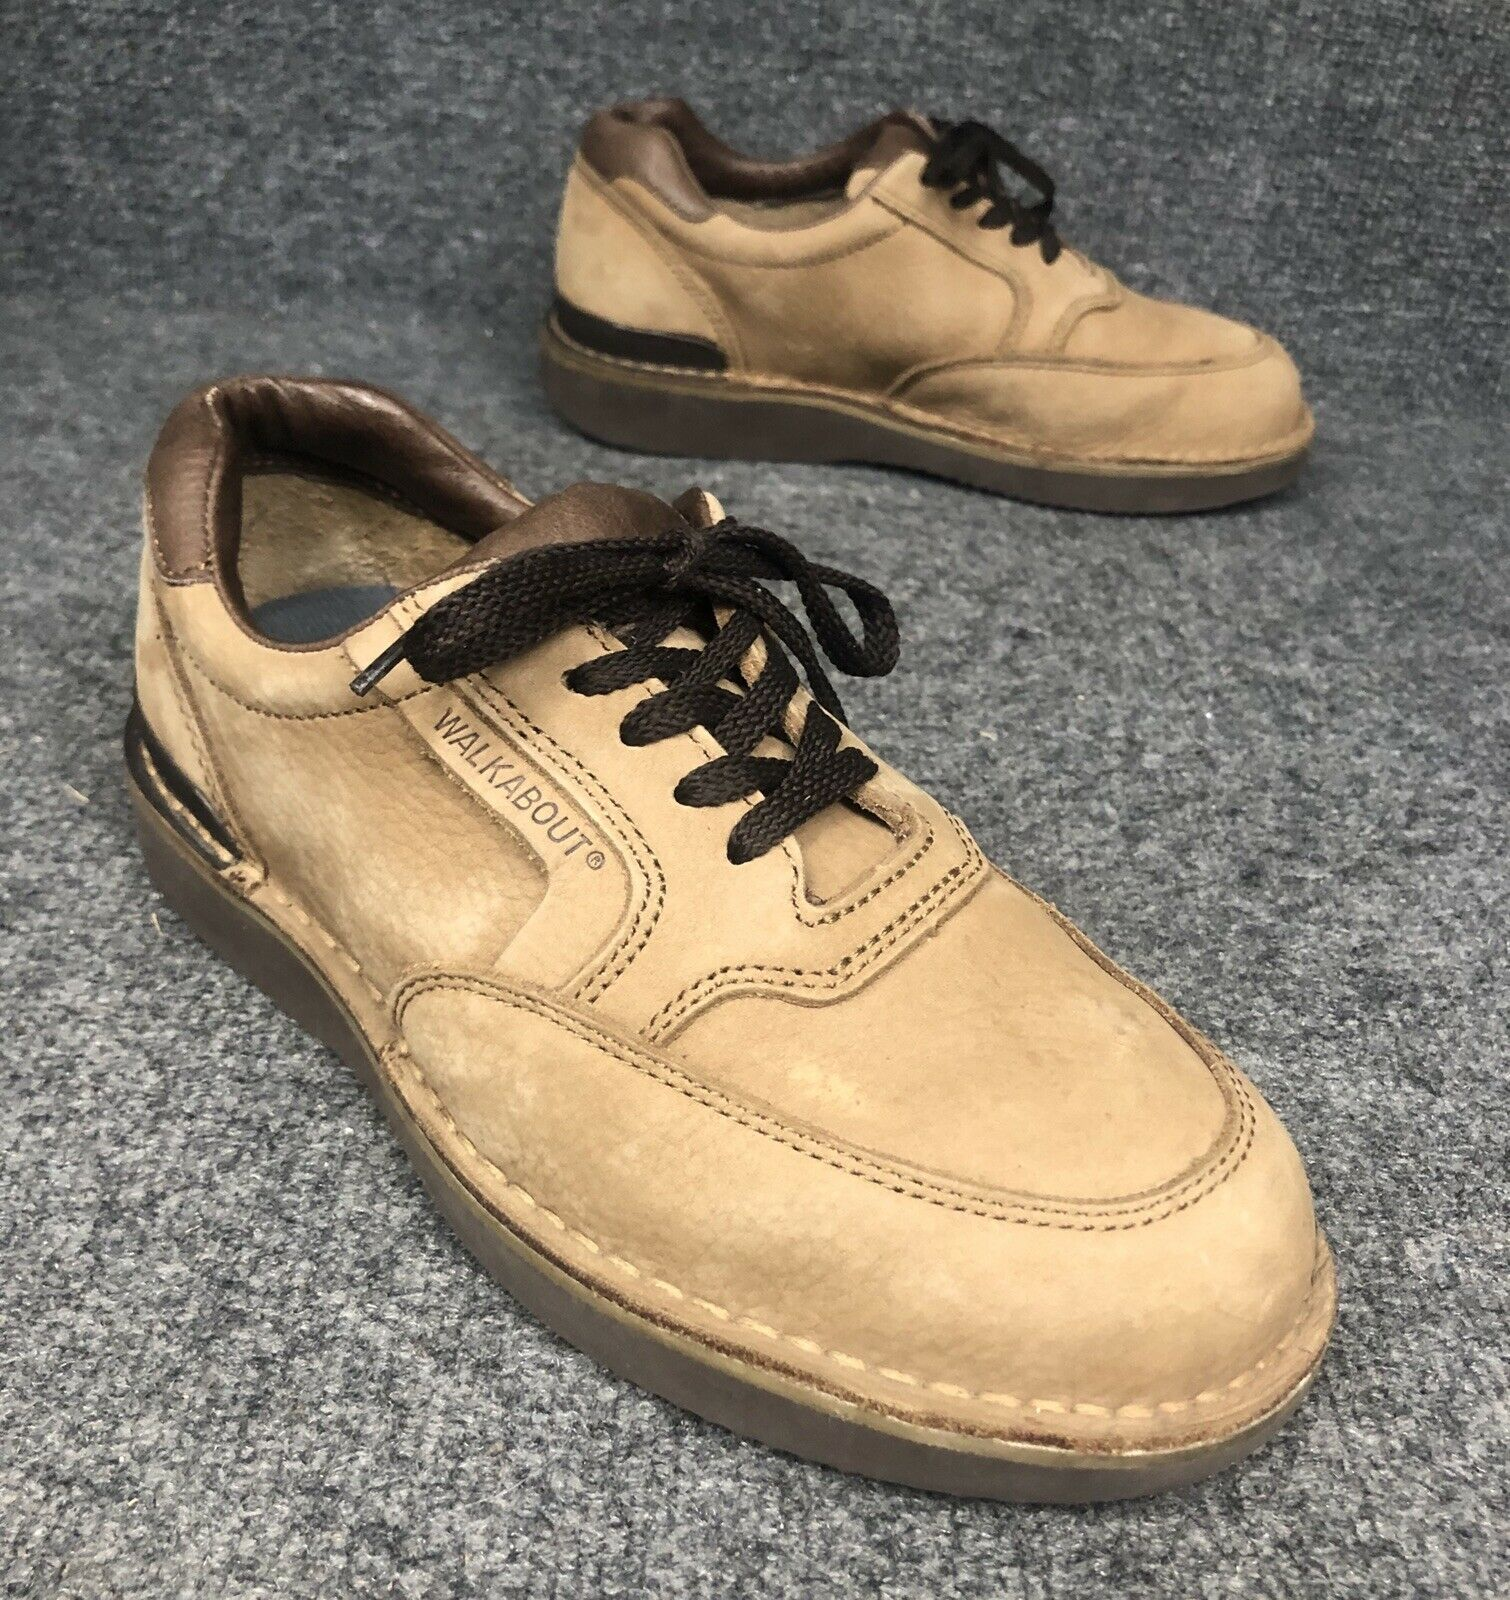 Footonic II Eva-Tech Walkabout Tan Leather shoes Mens Sz 7.5 E4 Extra Extra Wide